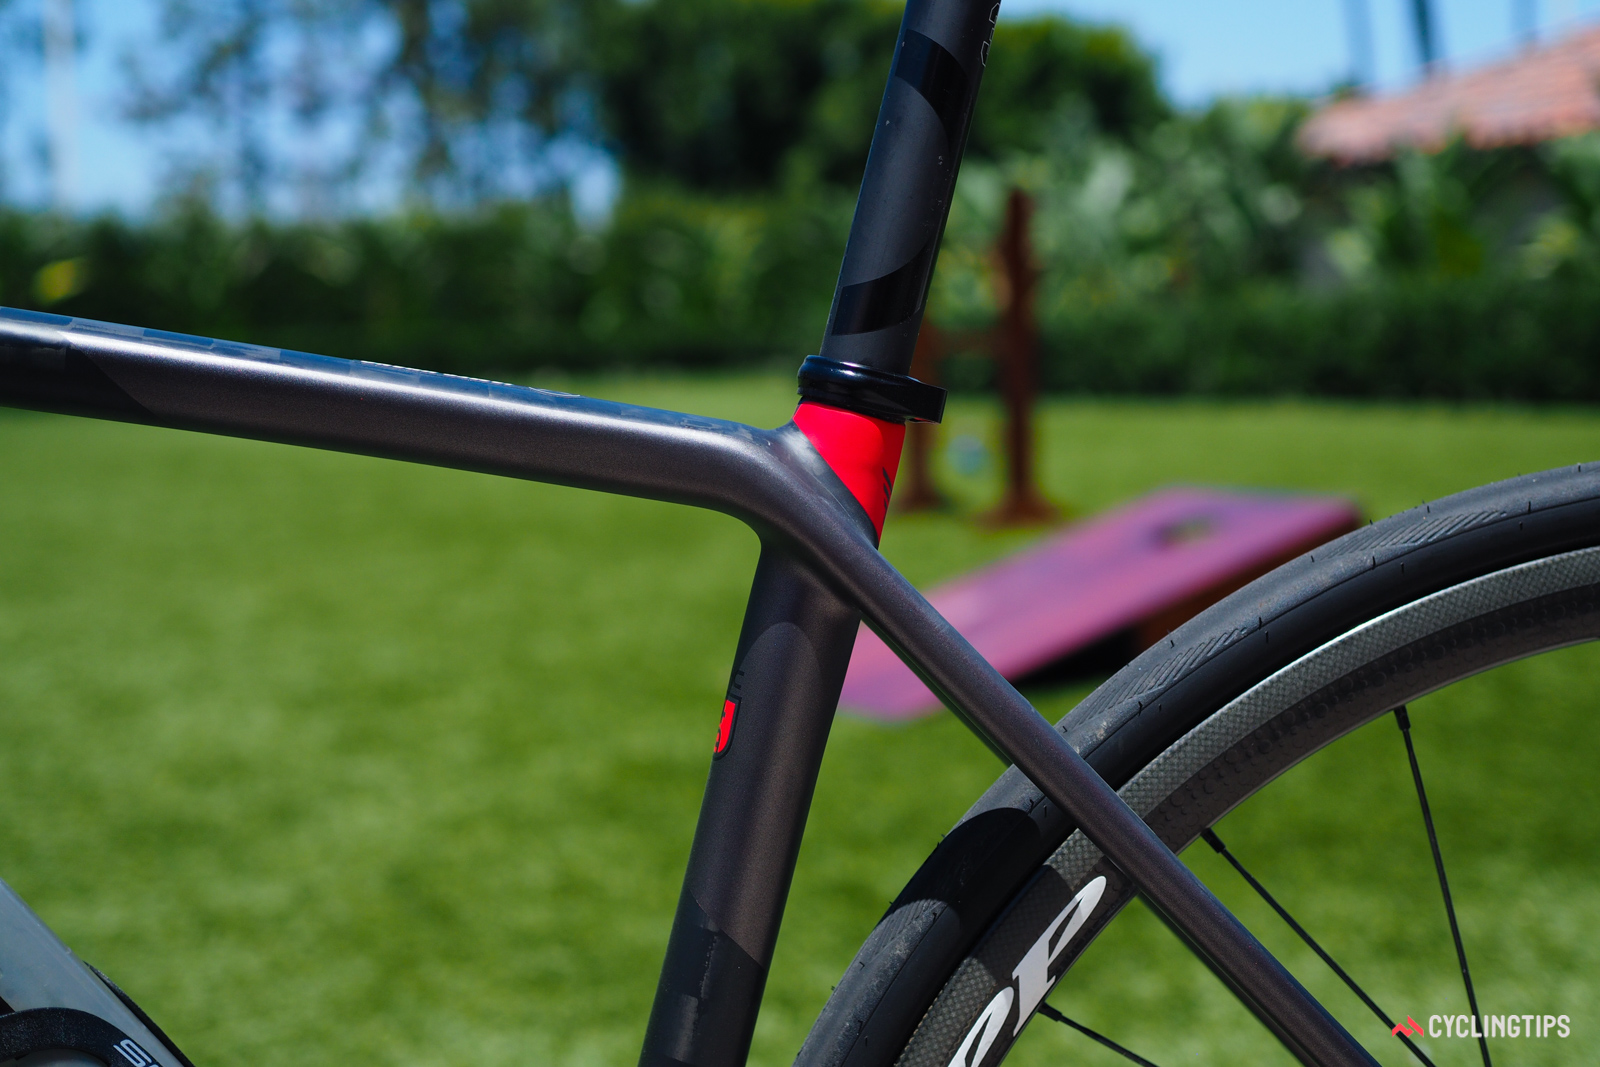 The seatstays visually flow into the top tube on the new Felt FR.